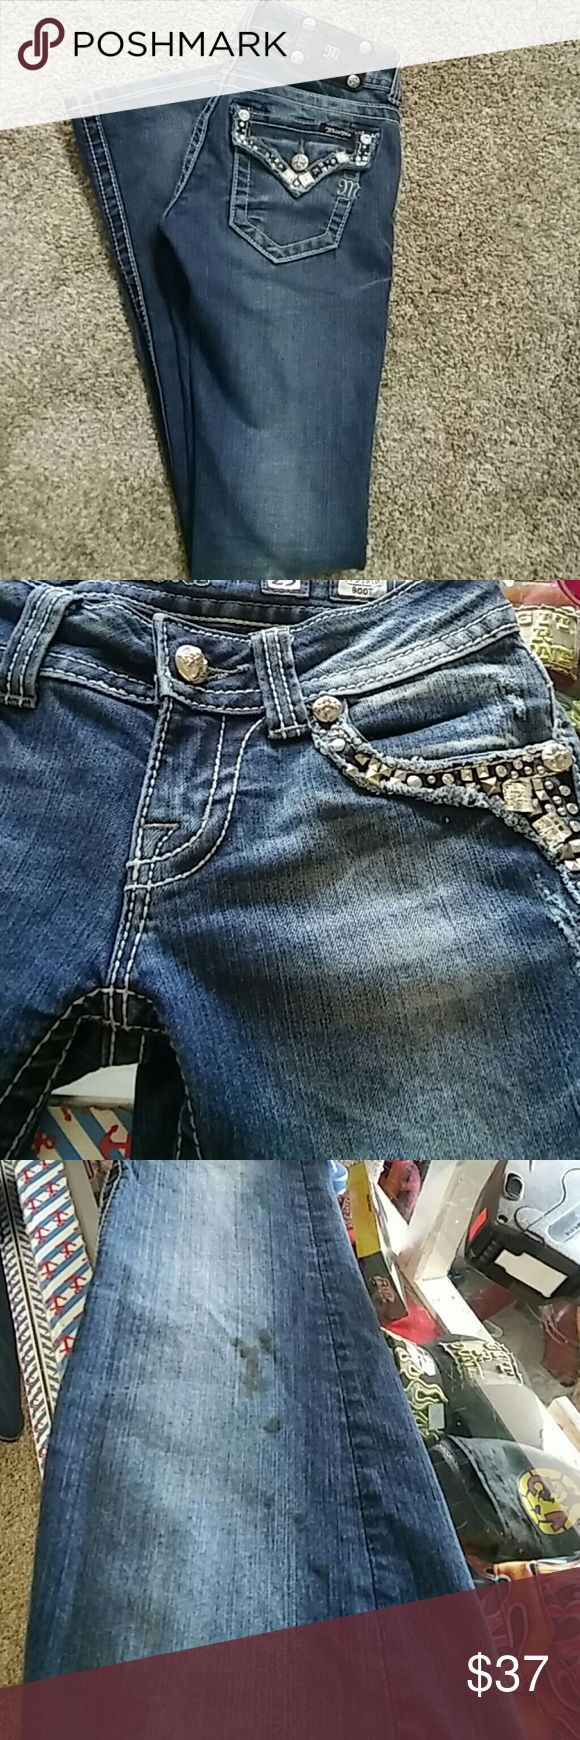 Miss Me boot cut jeans Clearance price this jean have a couple stains i dont know if are removable shows in picture Miss Me Jeans Boot Cut